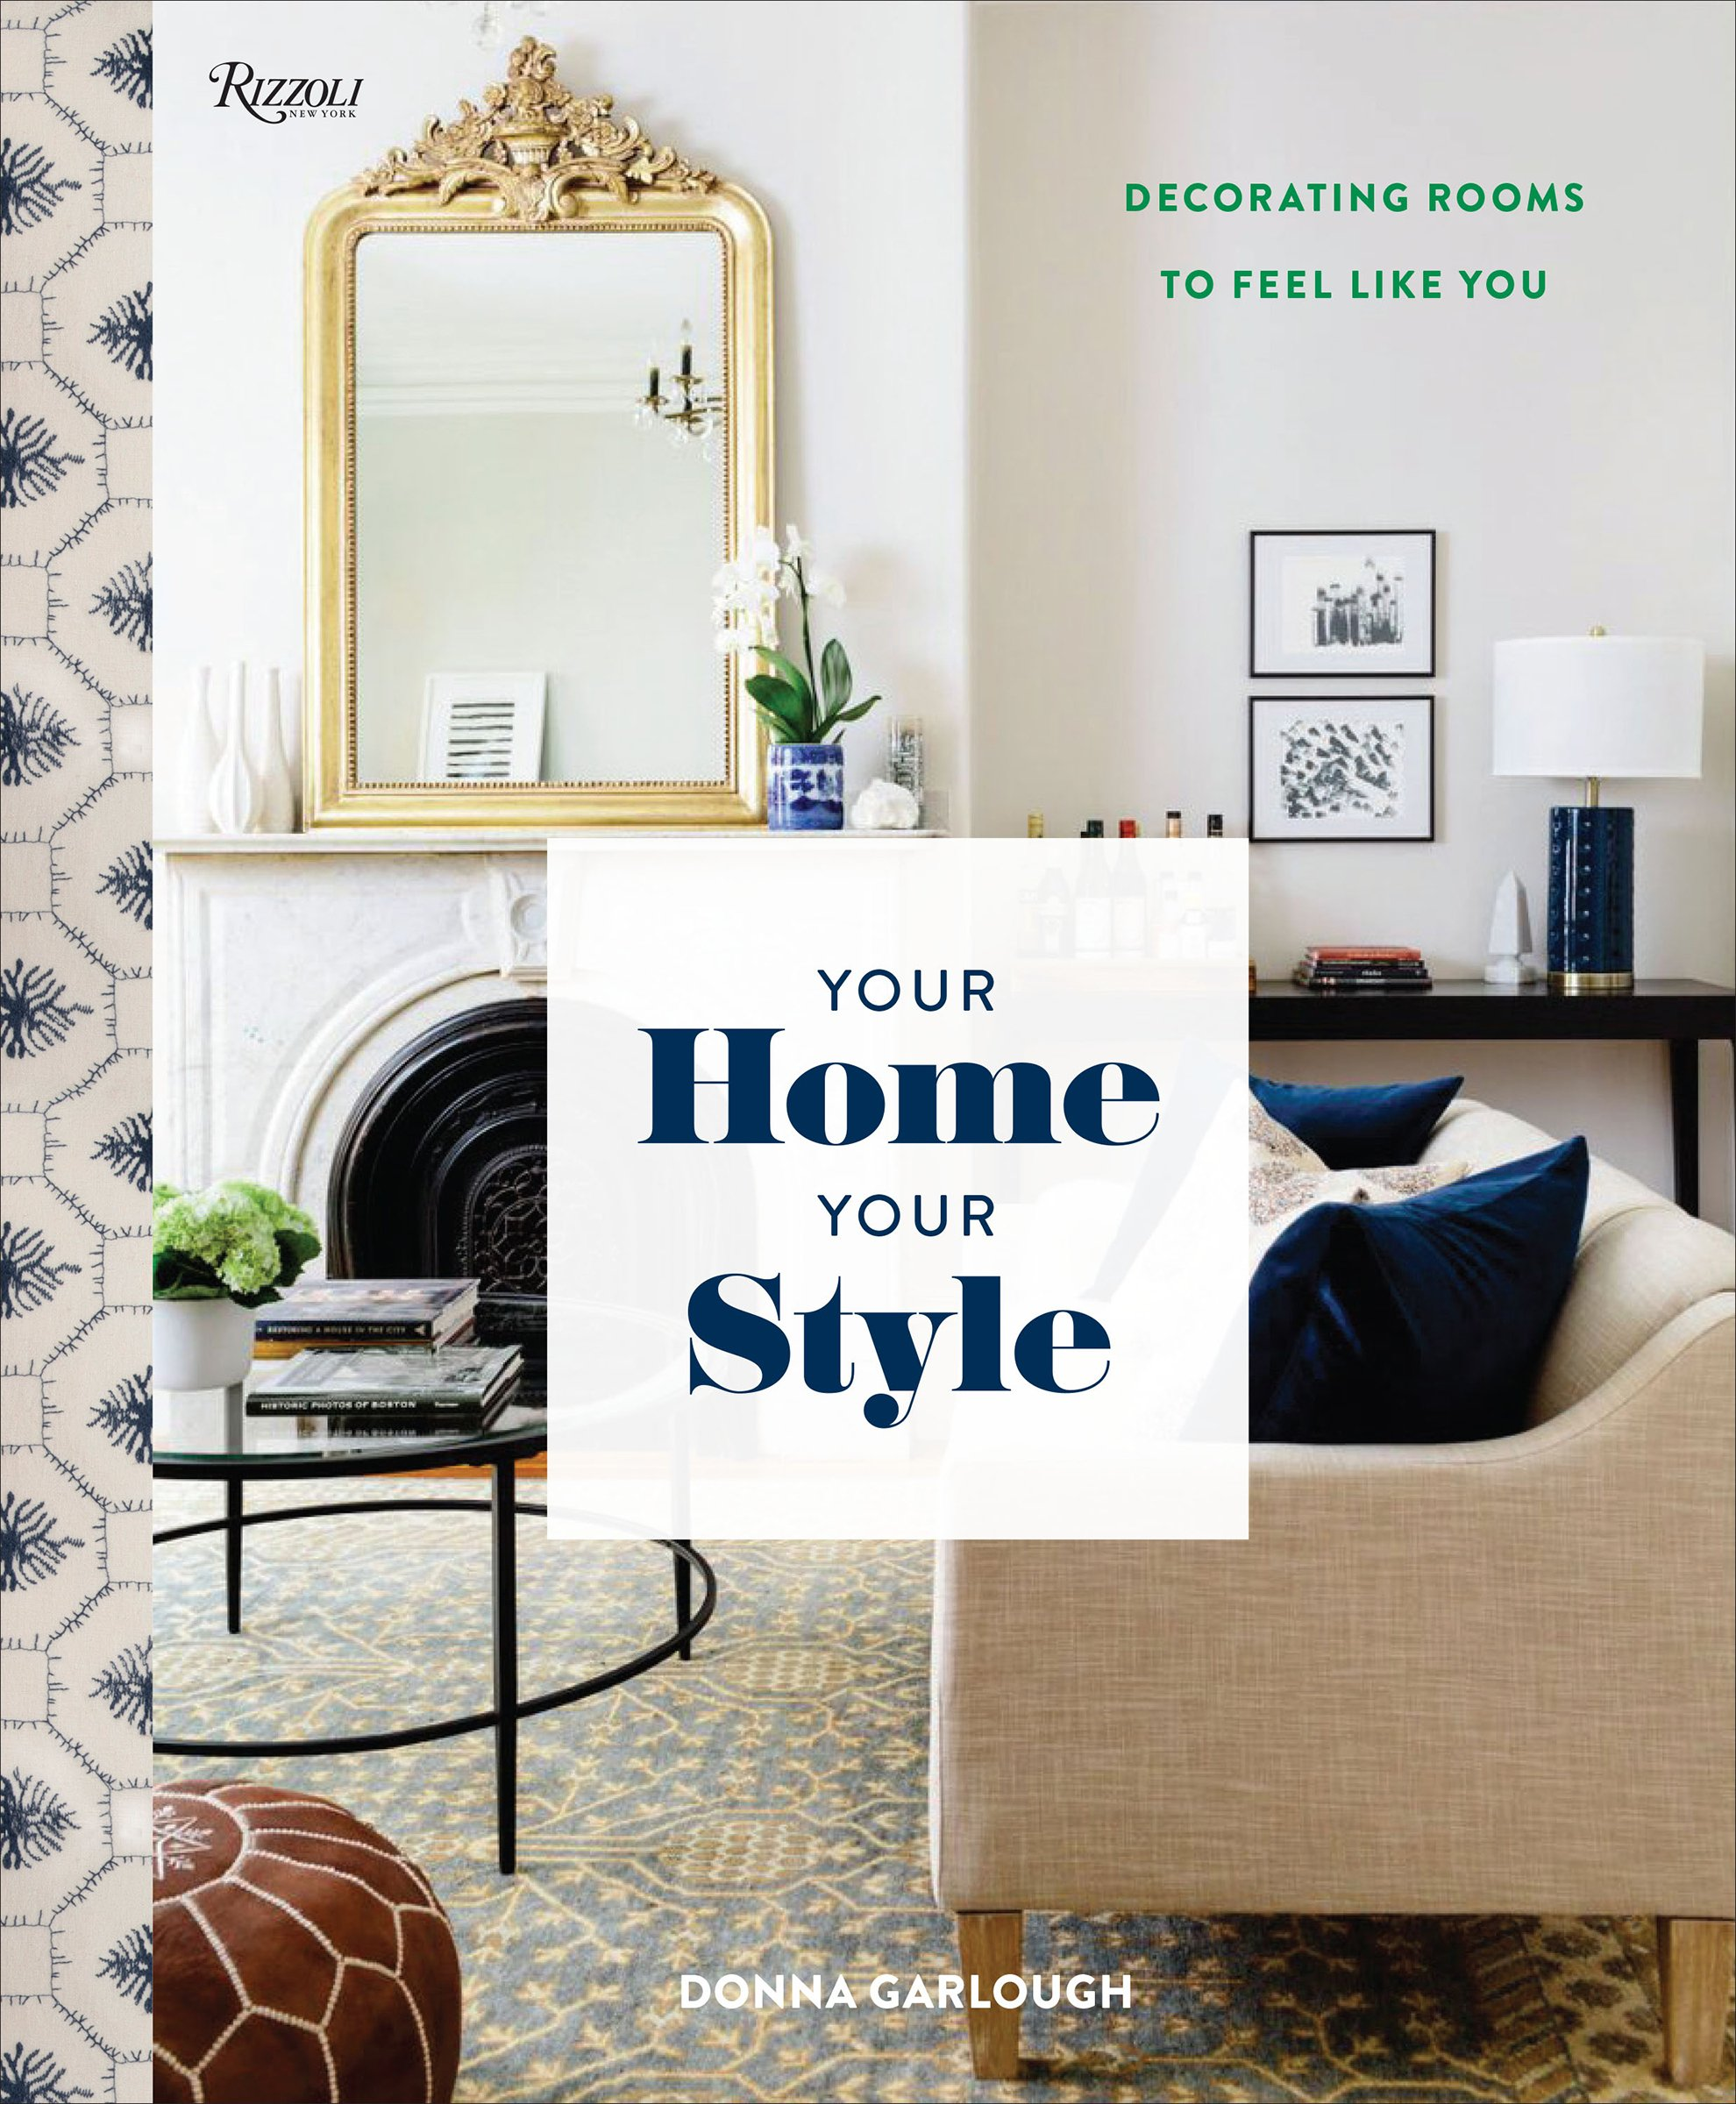 Your Home Your Style How To Find Your Look Create Rooms You Love Garlough Donna West Joyelle 9780847861798 Amazon Com Books